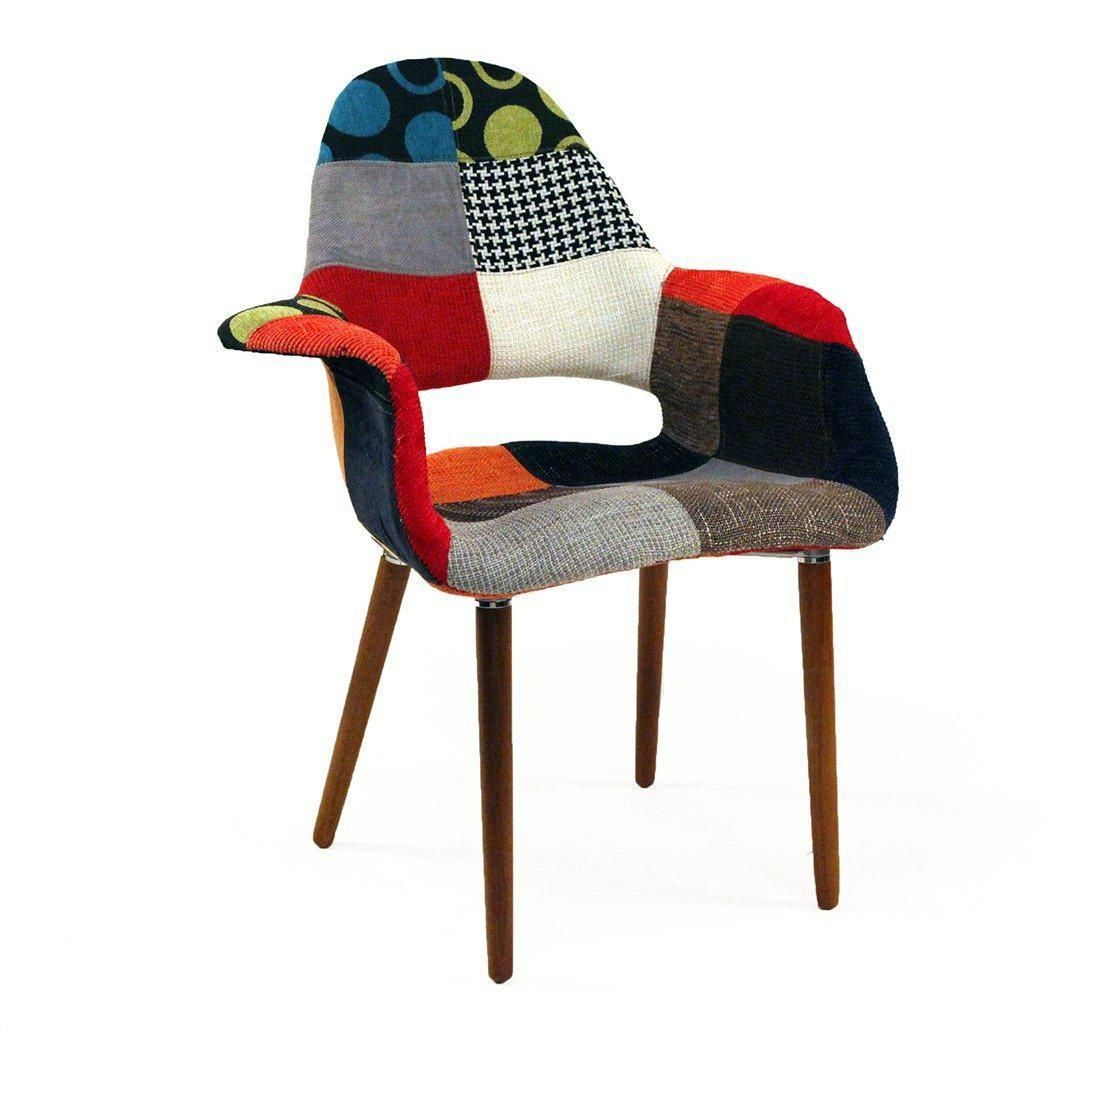 Mid century modern organic chair patchwork inspired by charles and ray e and eero saarinen france son